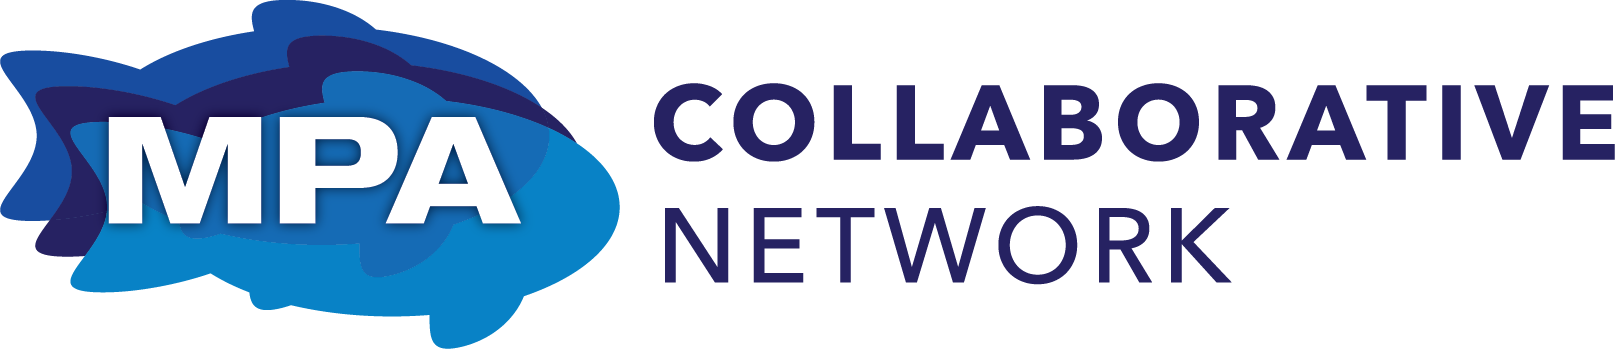 MPA Collaborative Network